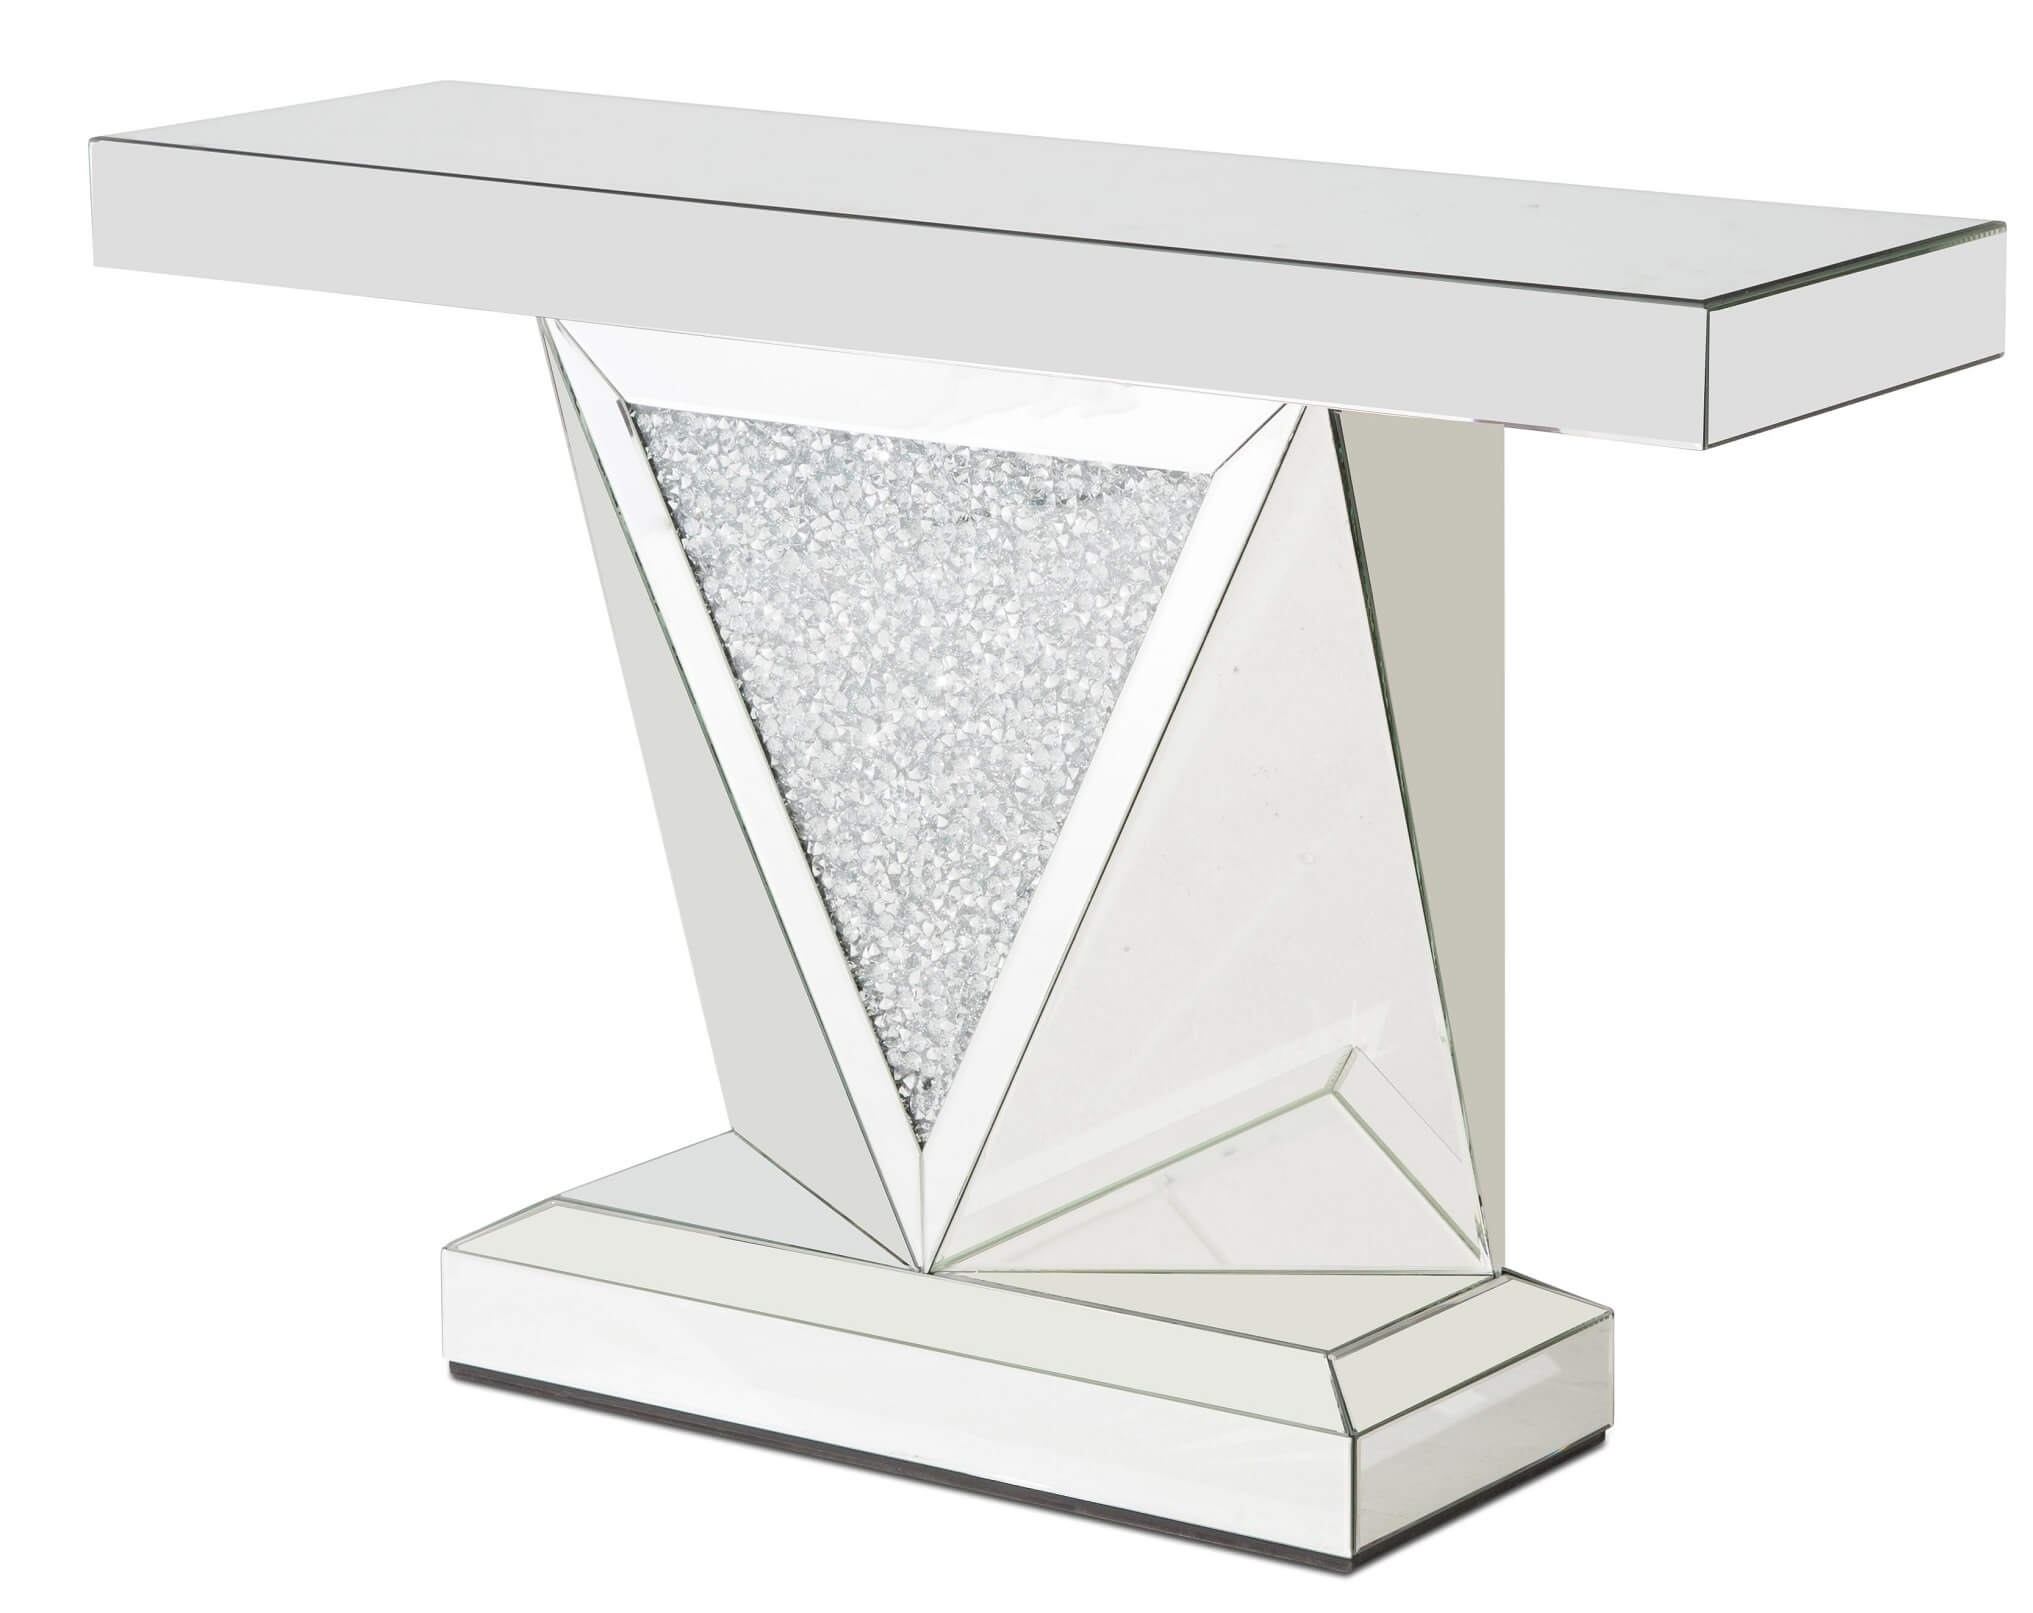 Montreal Console Table Mirror With Crystal AICO FS MNTRL 1457